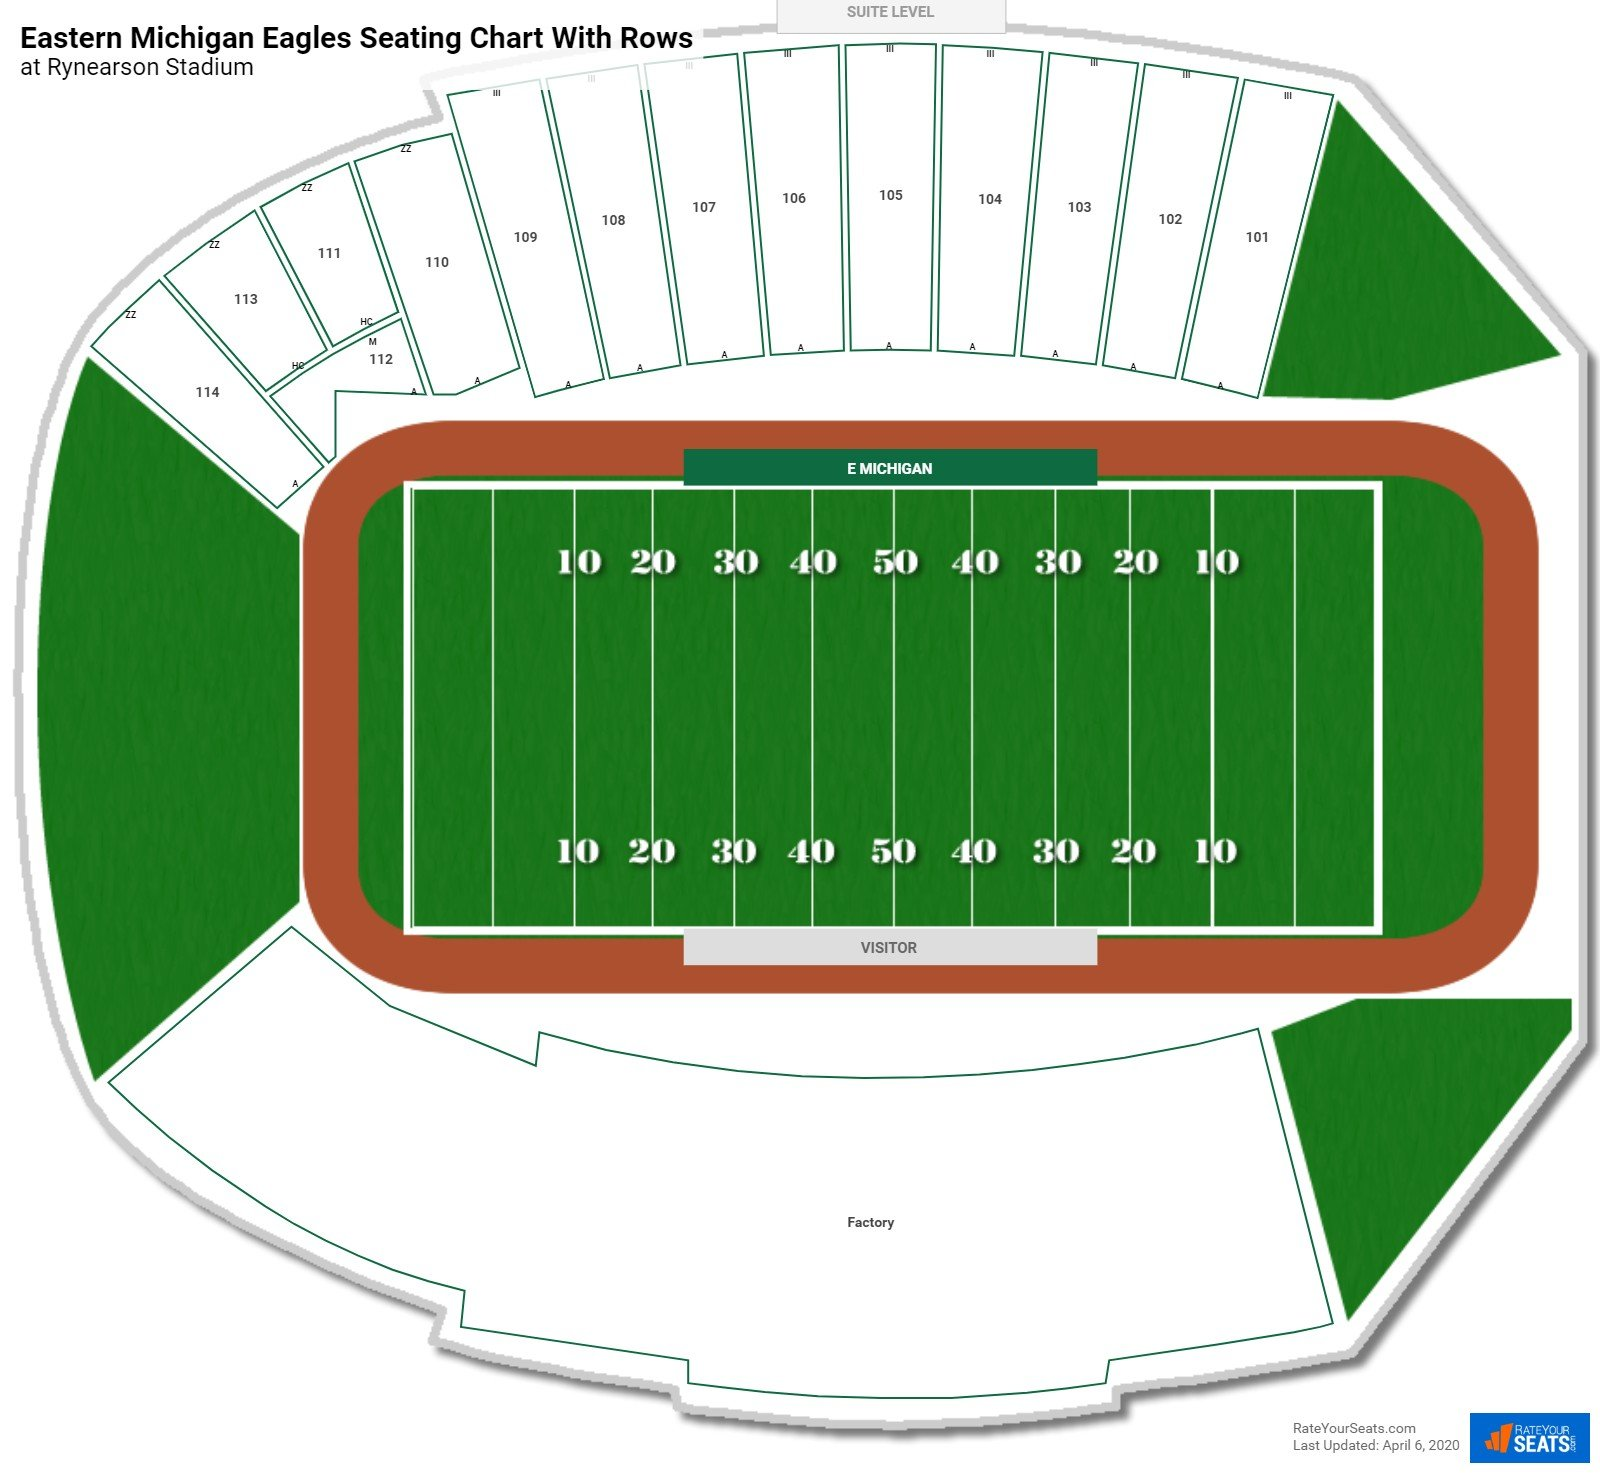 Rynearson Stadium seating chart with rows